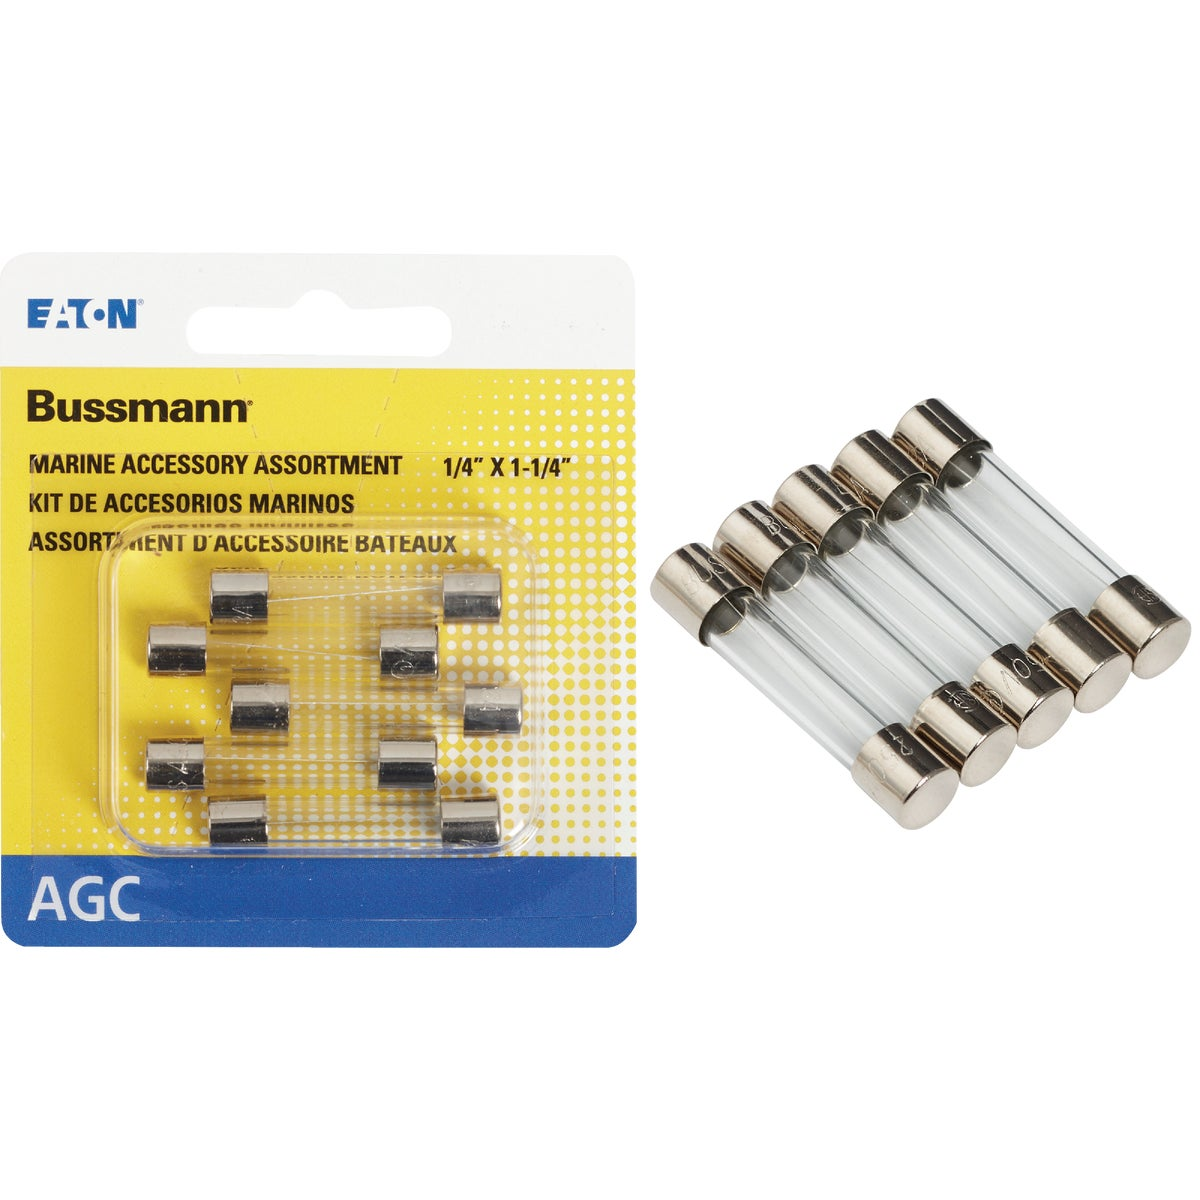 5PK ELECTRONIC FUSE - HEF-1 by Bussmann Cooper